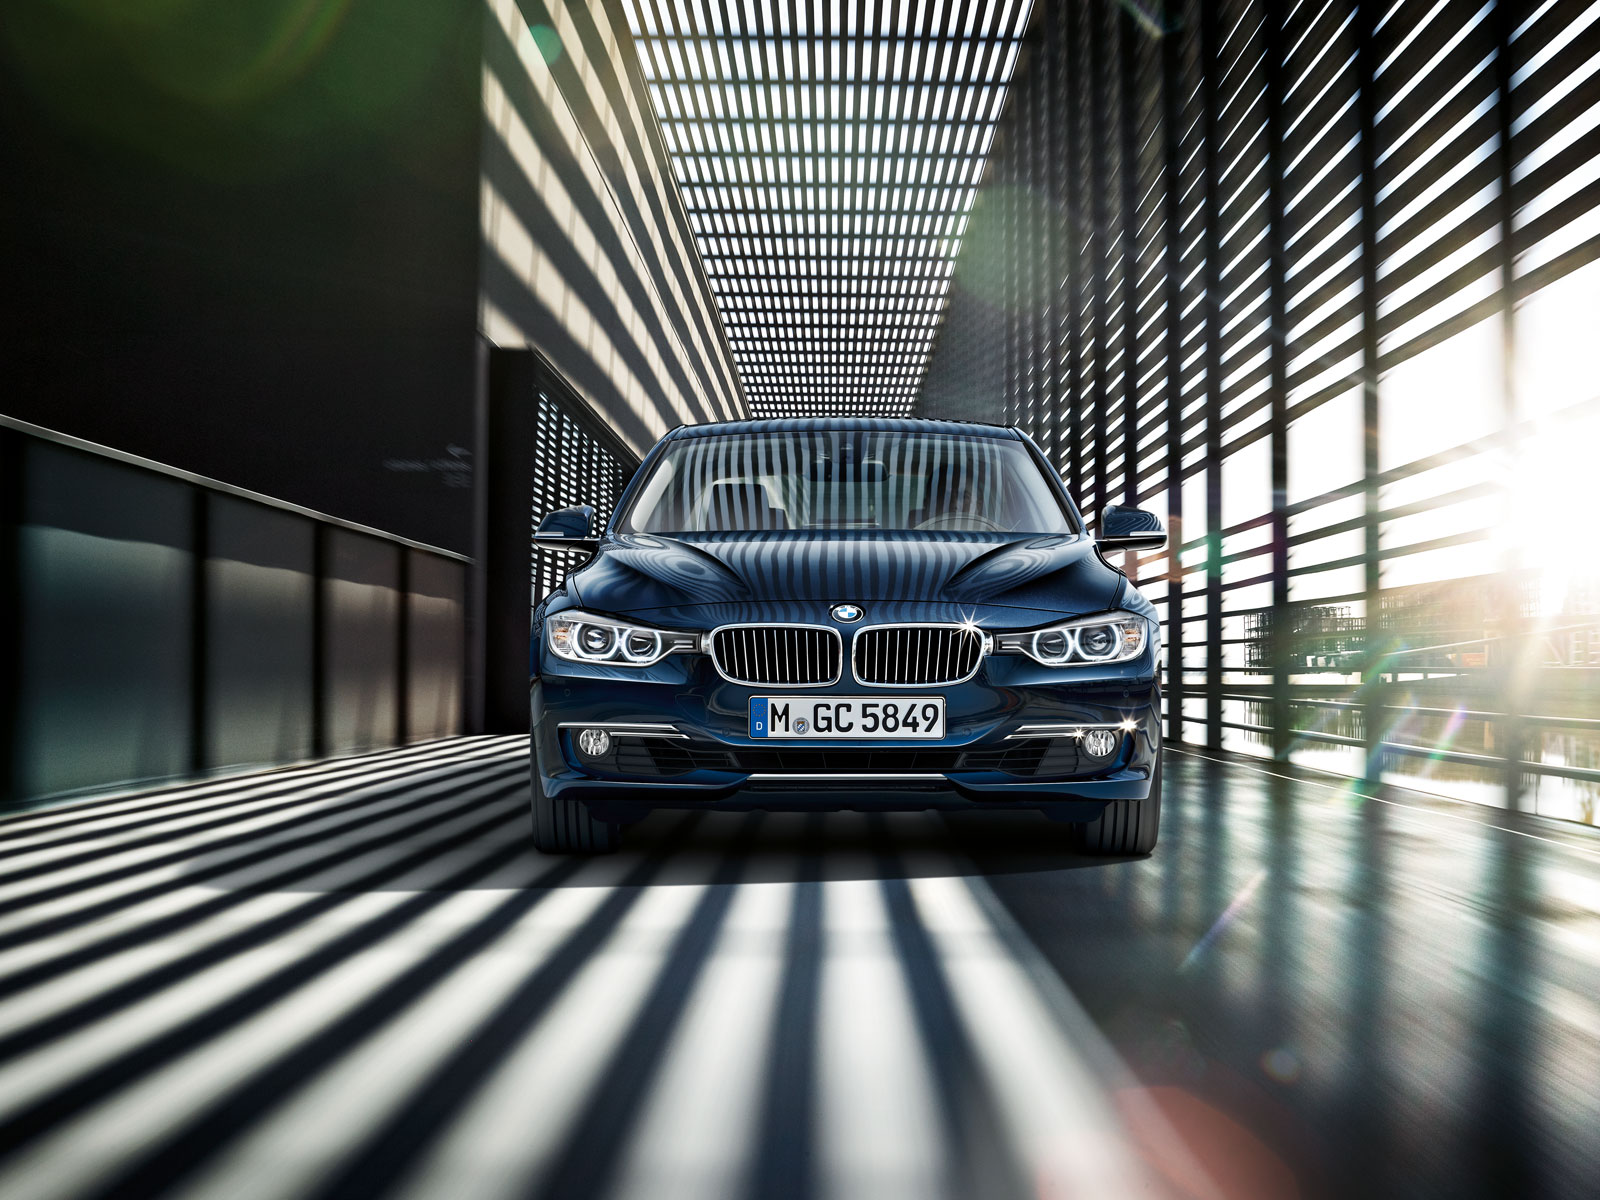 BMW_3series_wallpaper_06_1600